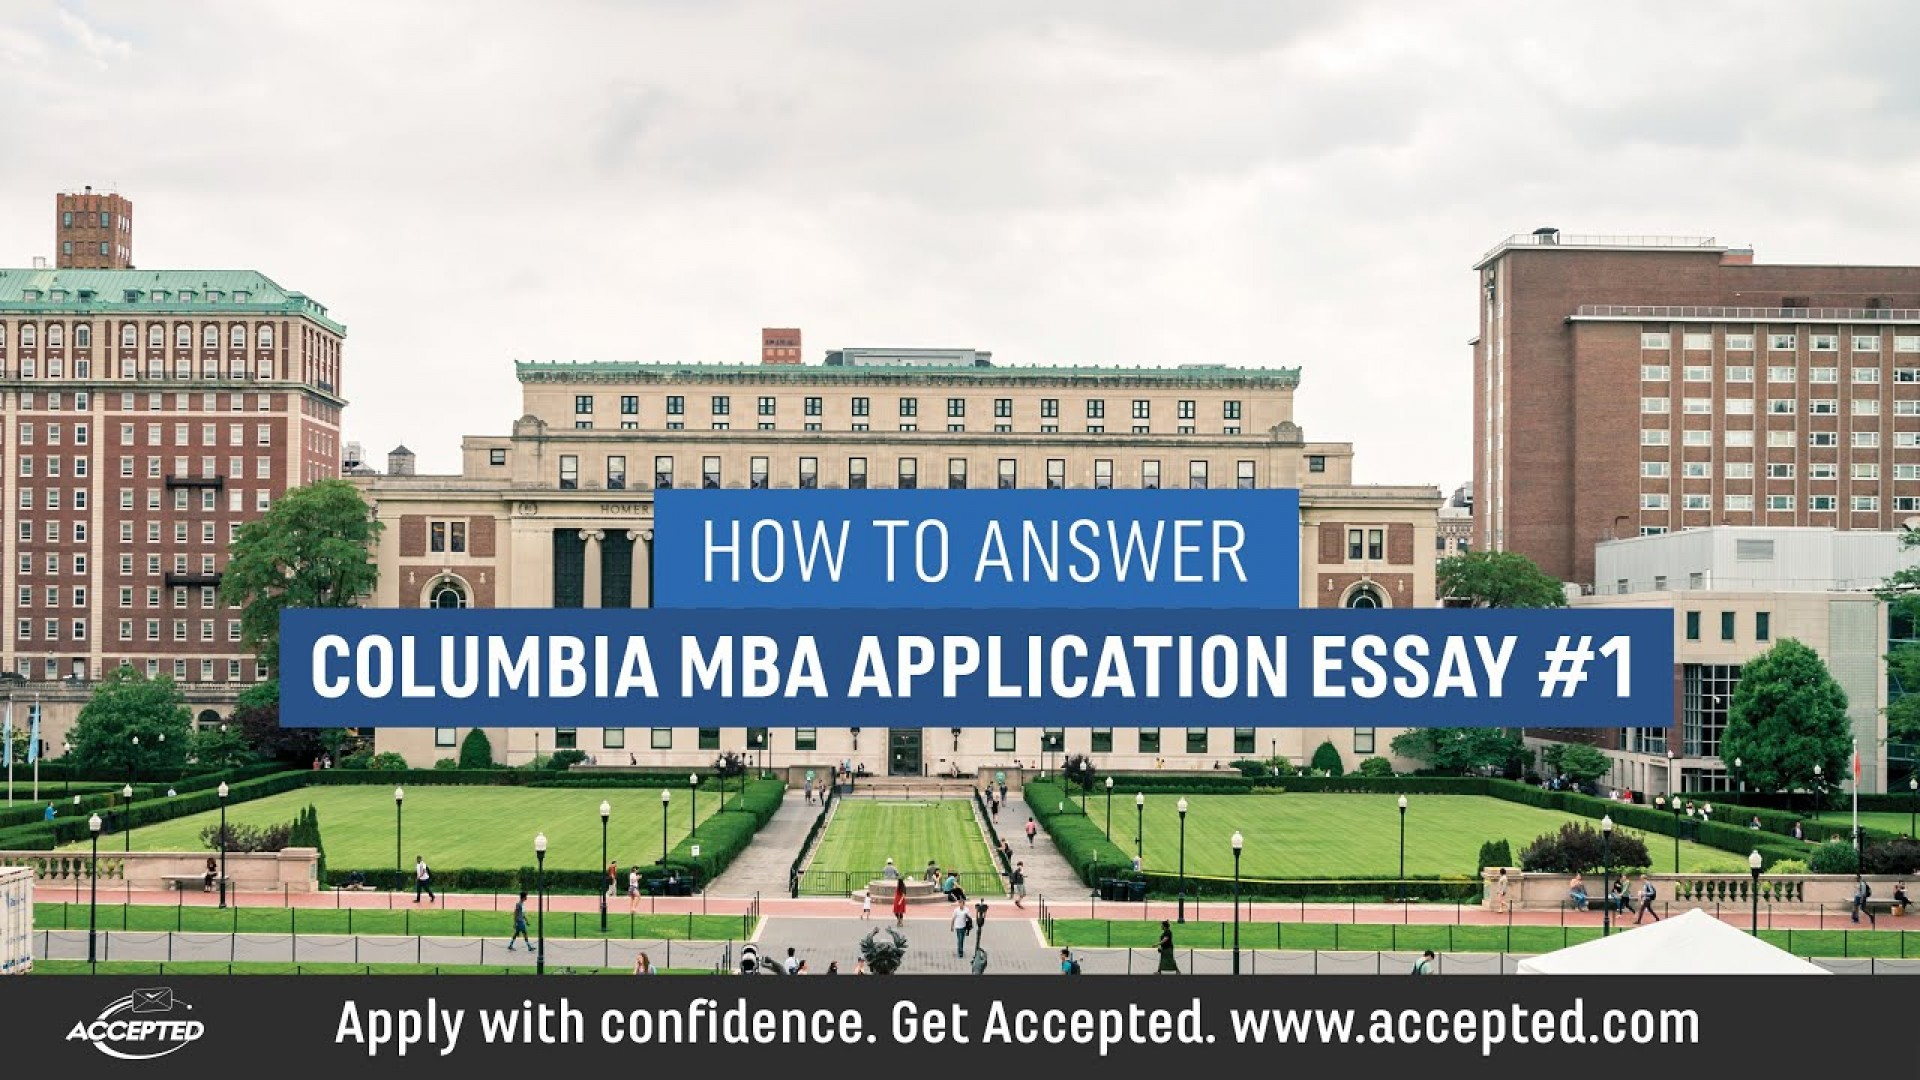 017 Maxresdefault Essay Example Columbia Astounding Mba Questions Analysis Formatting 1920